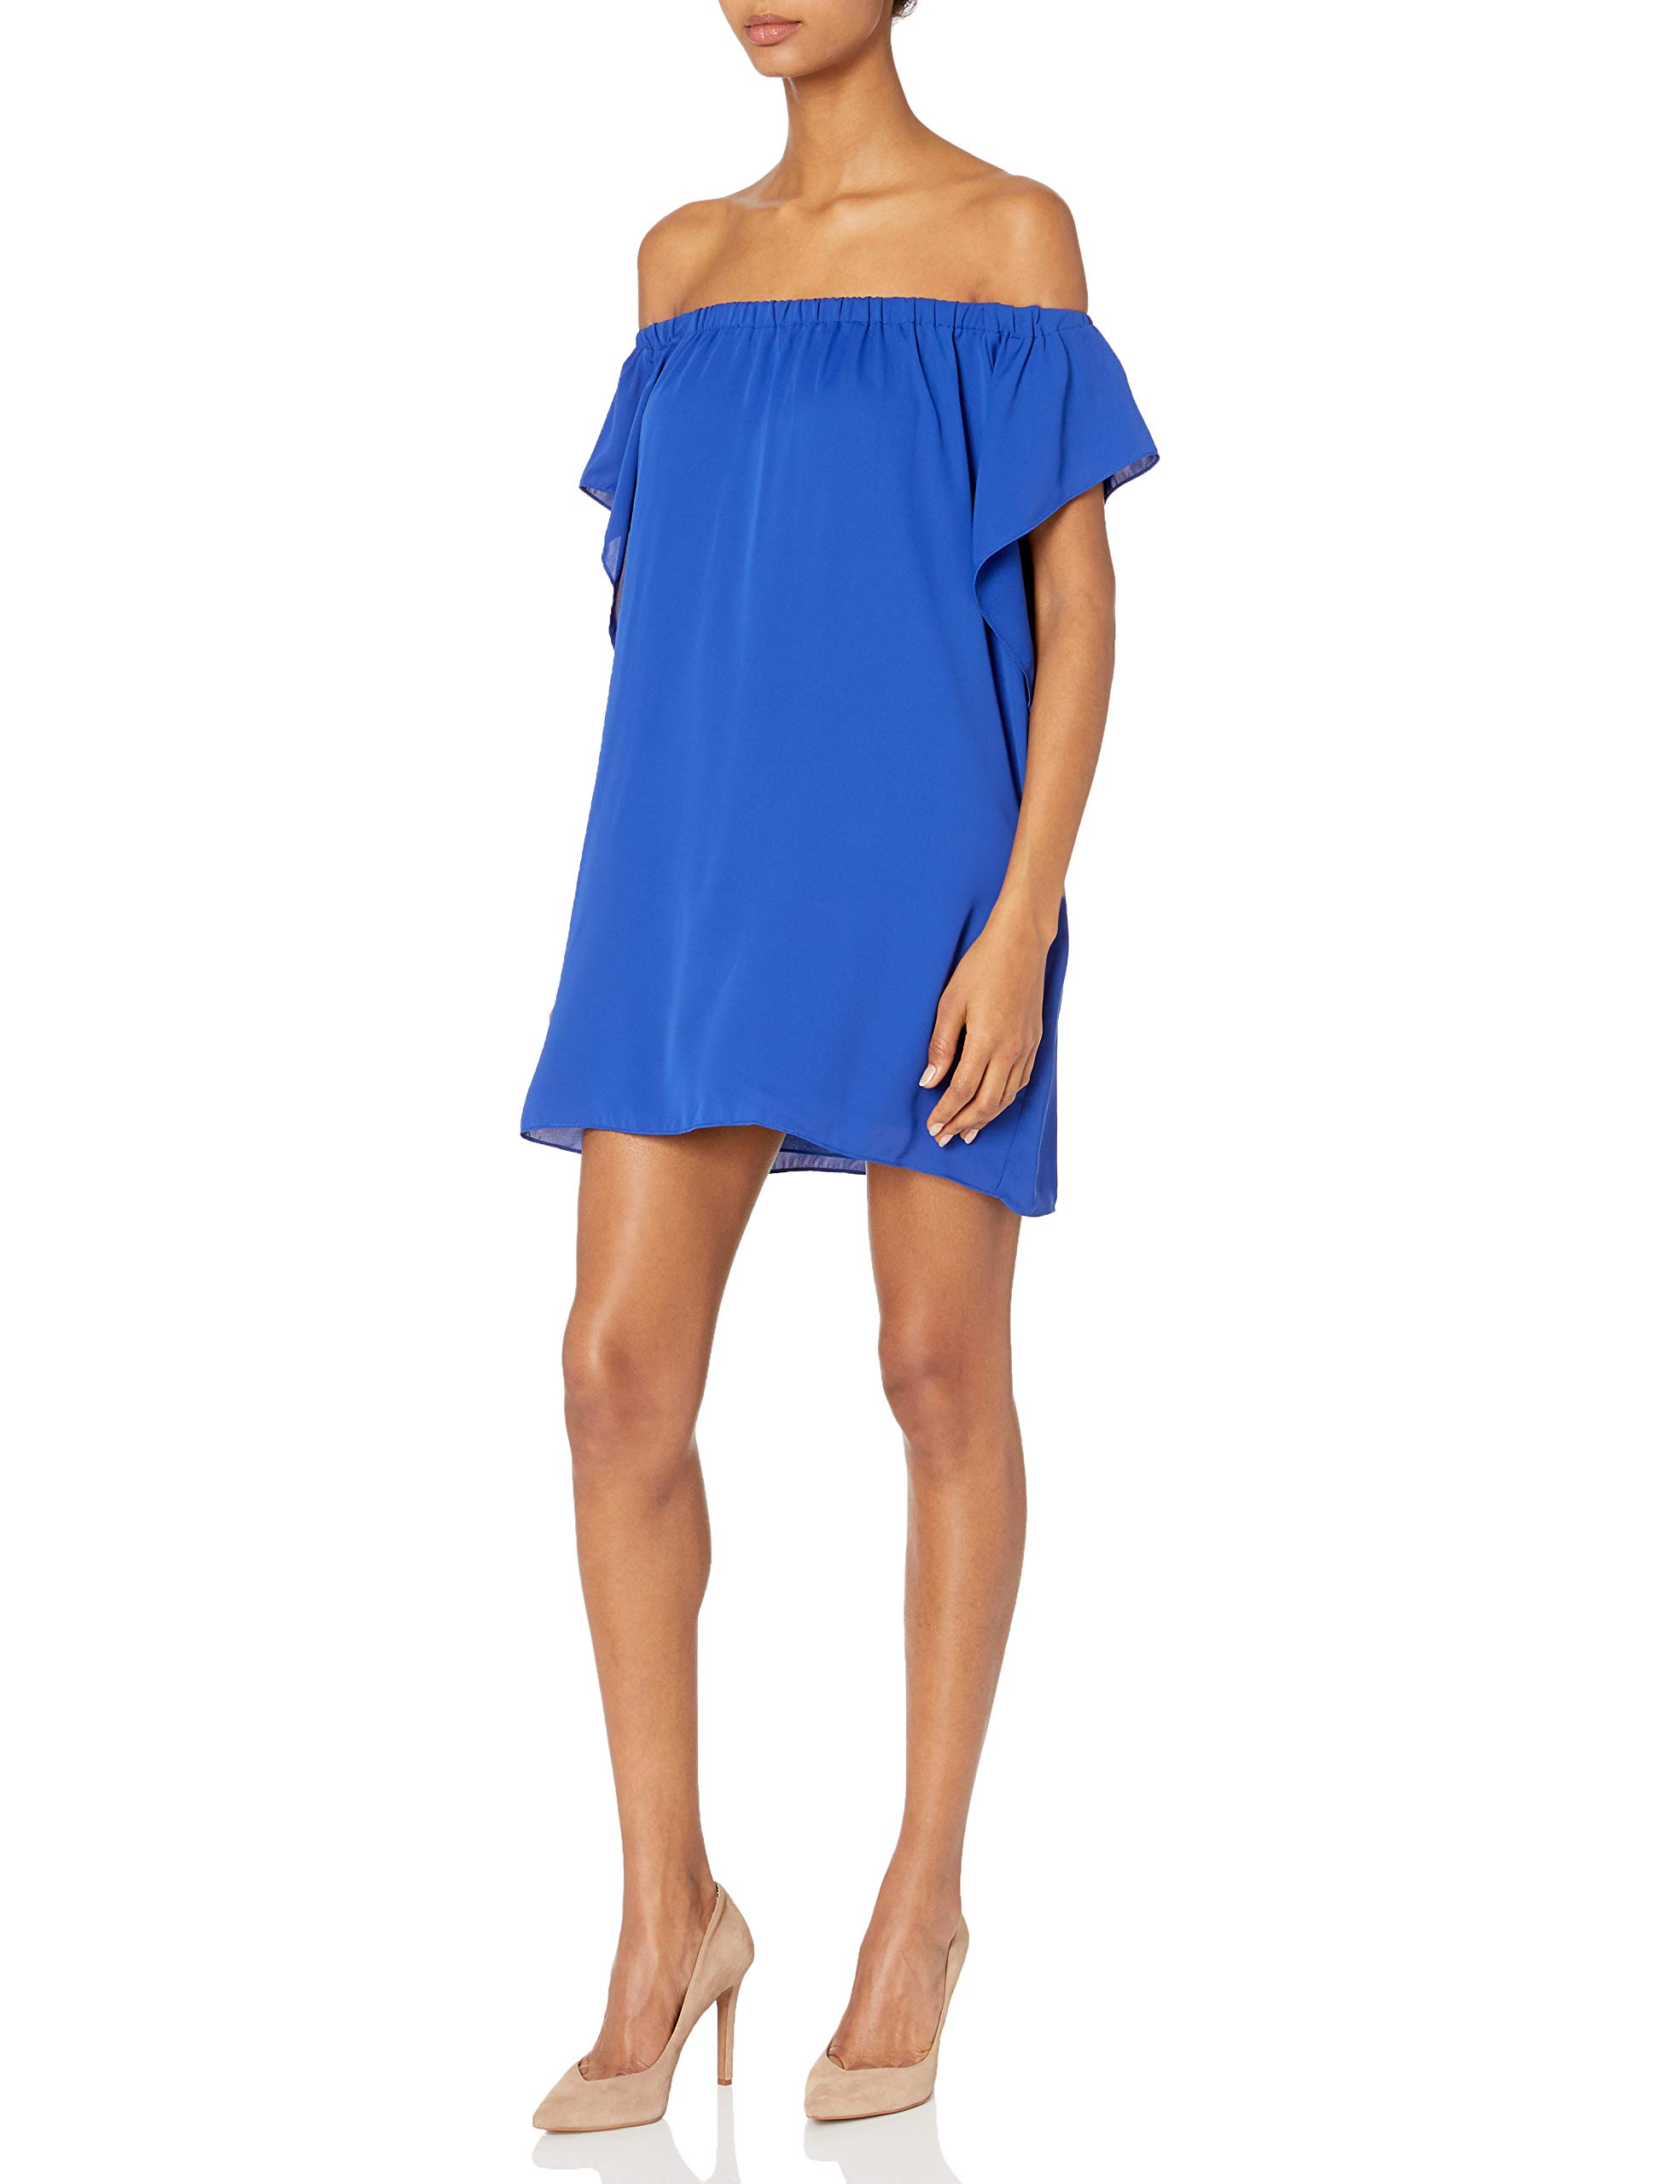 Available at Amazon: Amanda Uprichard Women's Castaway Dress